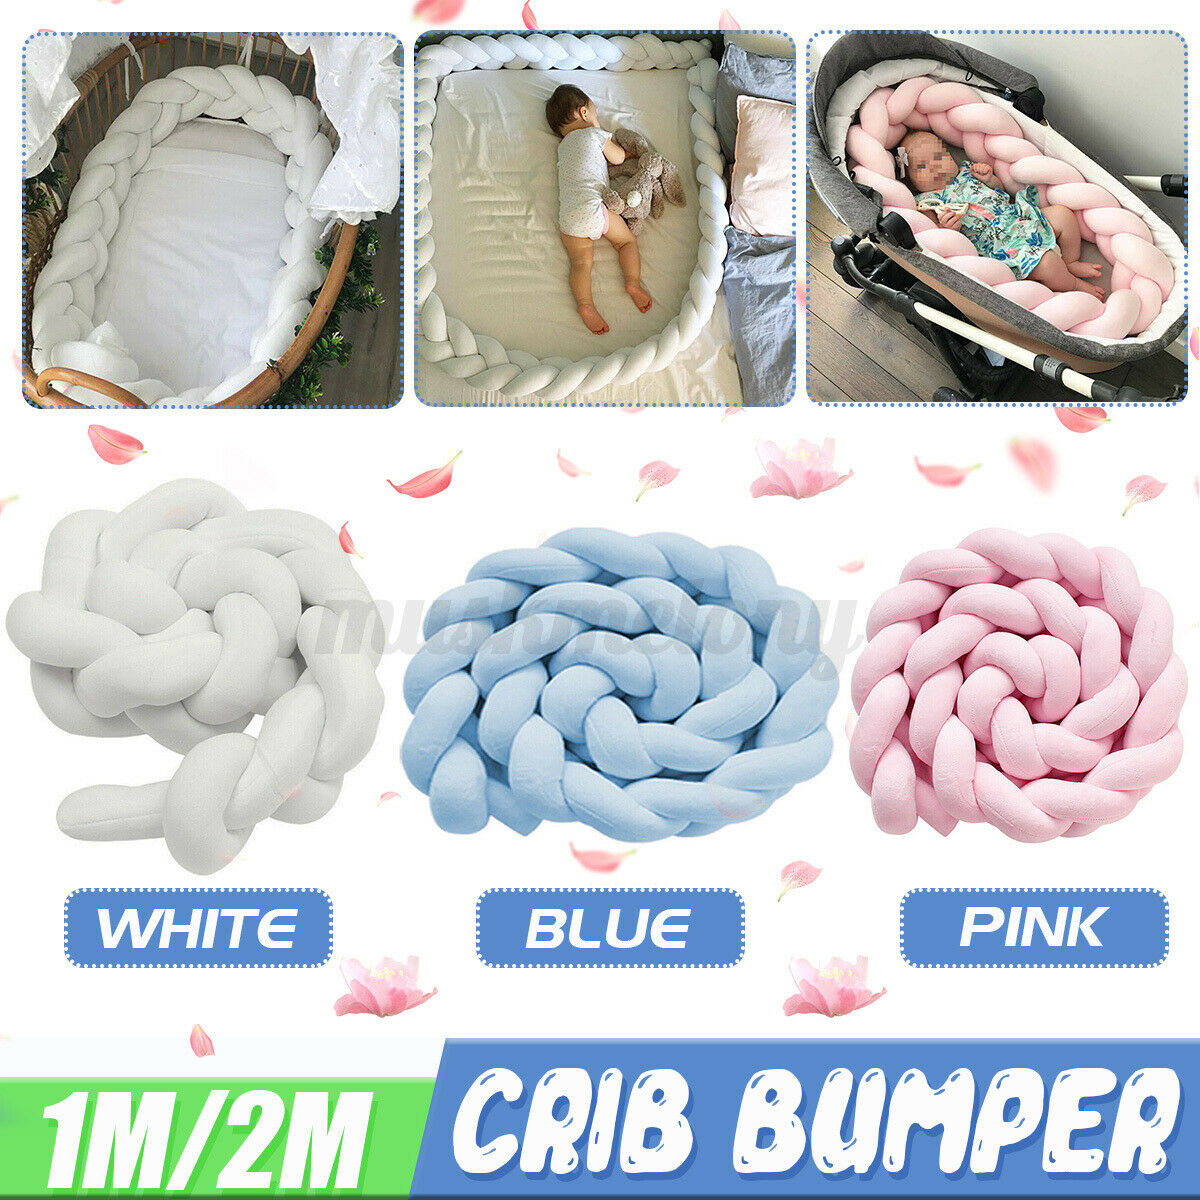 Soft Baby Crib Protector Crib Pillow Cushion Infant Soft Pad Braided Crib Protection Newborn Gift Bed Snake Braided Protector for Crib Cot Cradle Decor,39in 1M